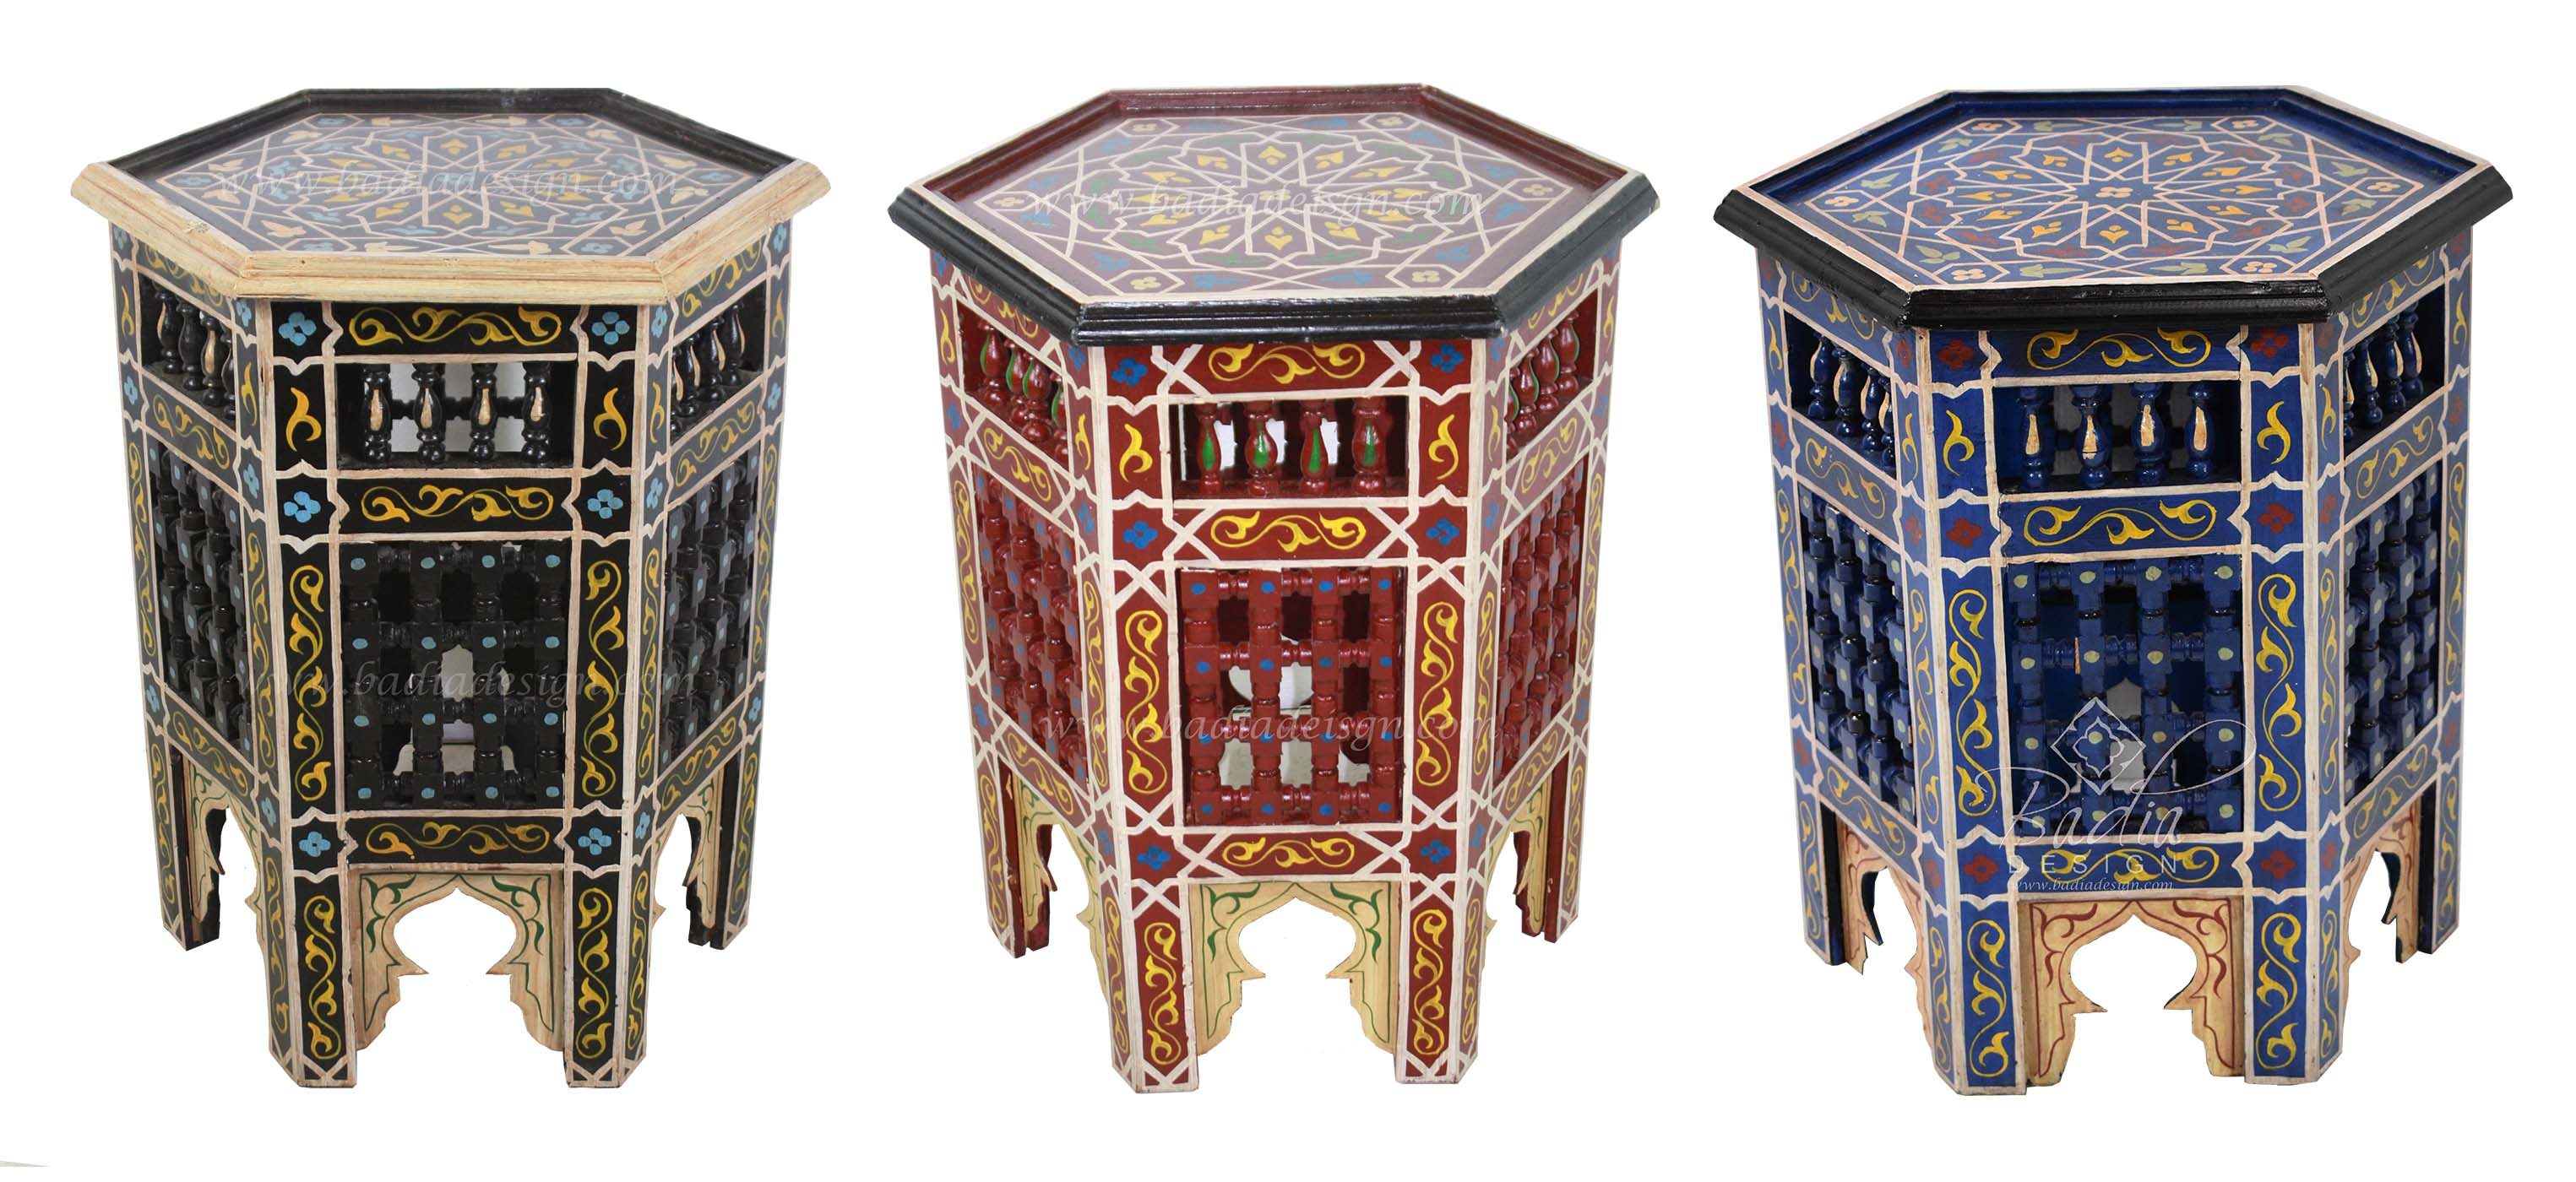 moroccan-hand-painted-side-table-hp324.jpg